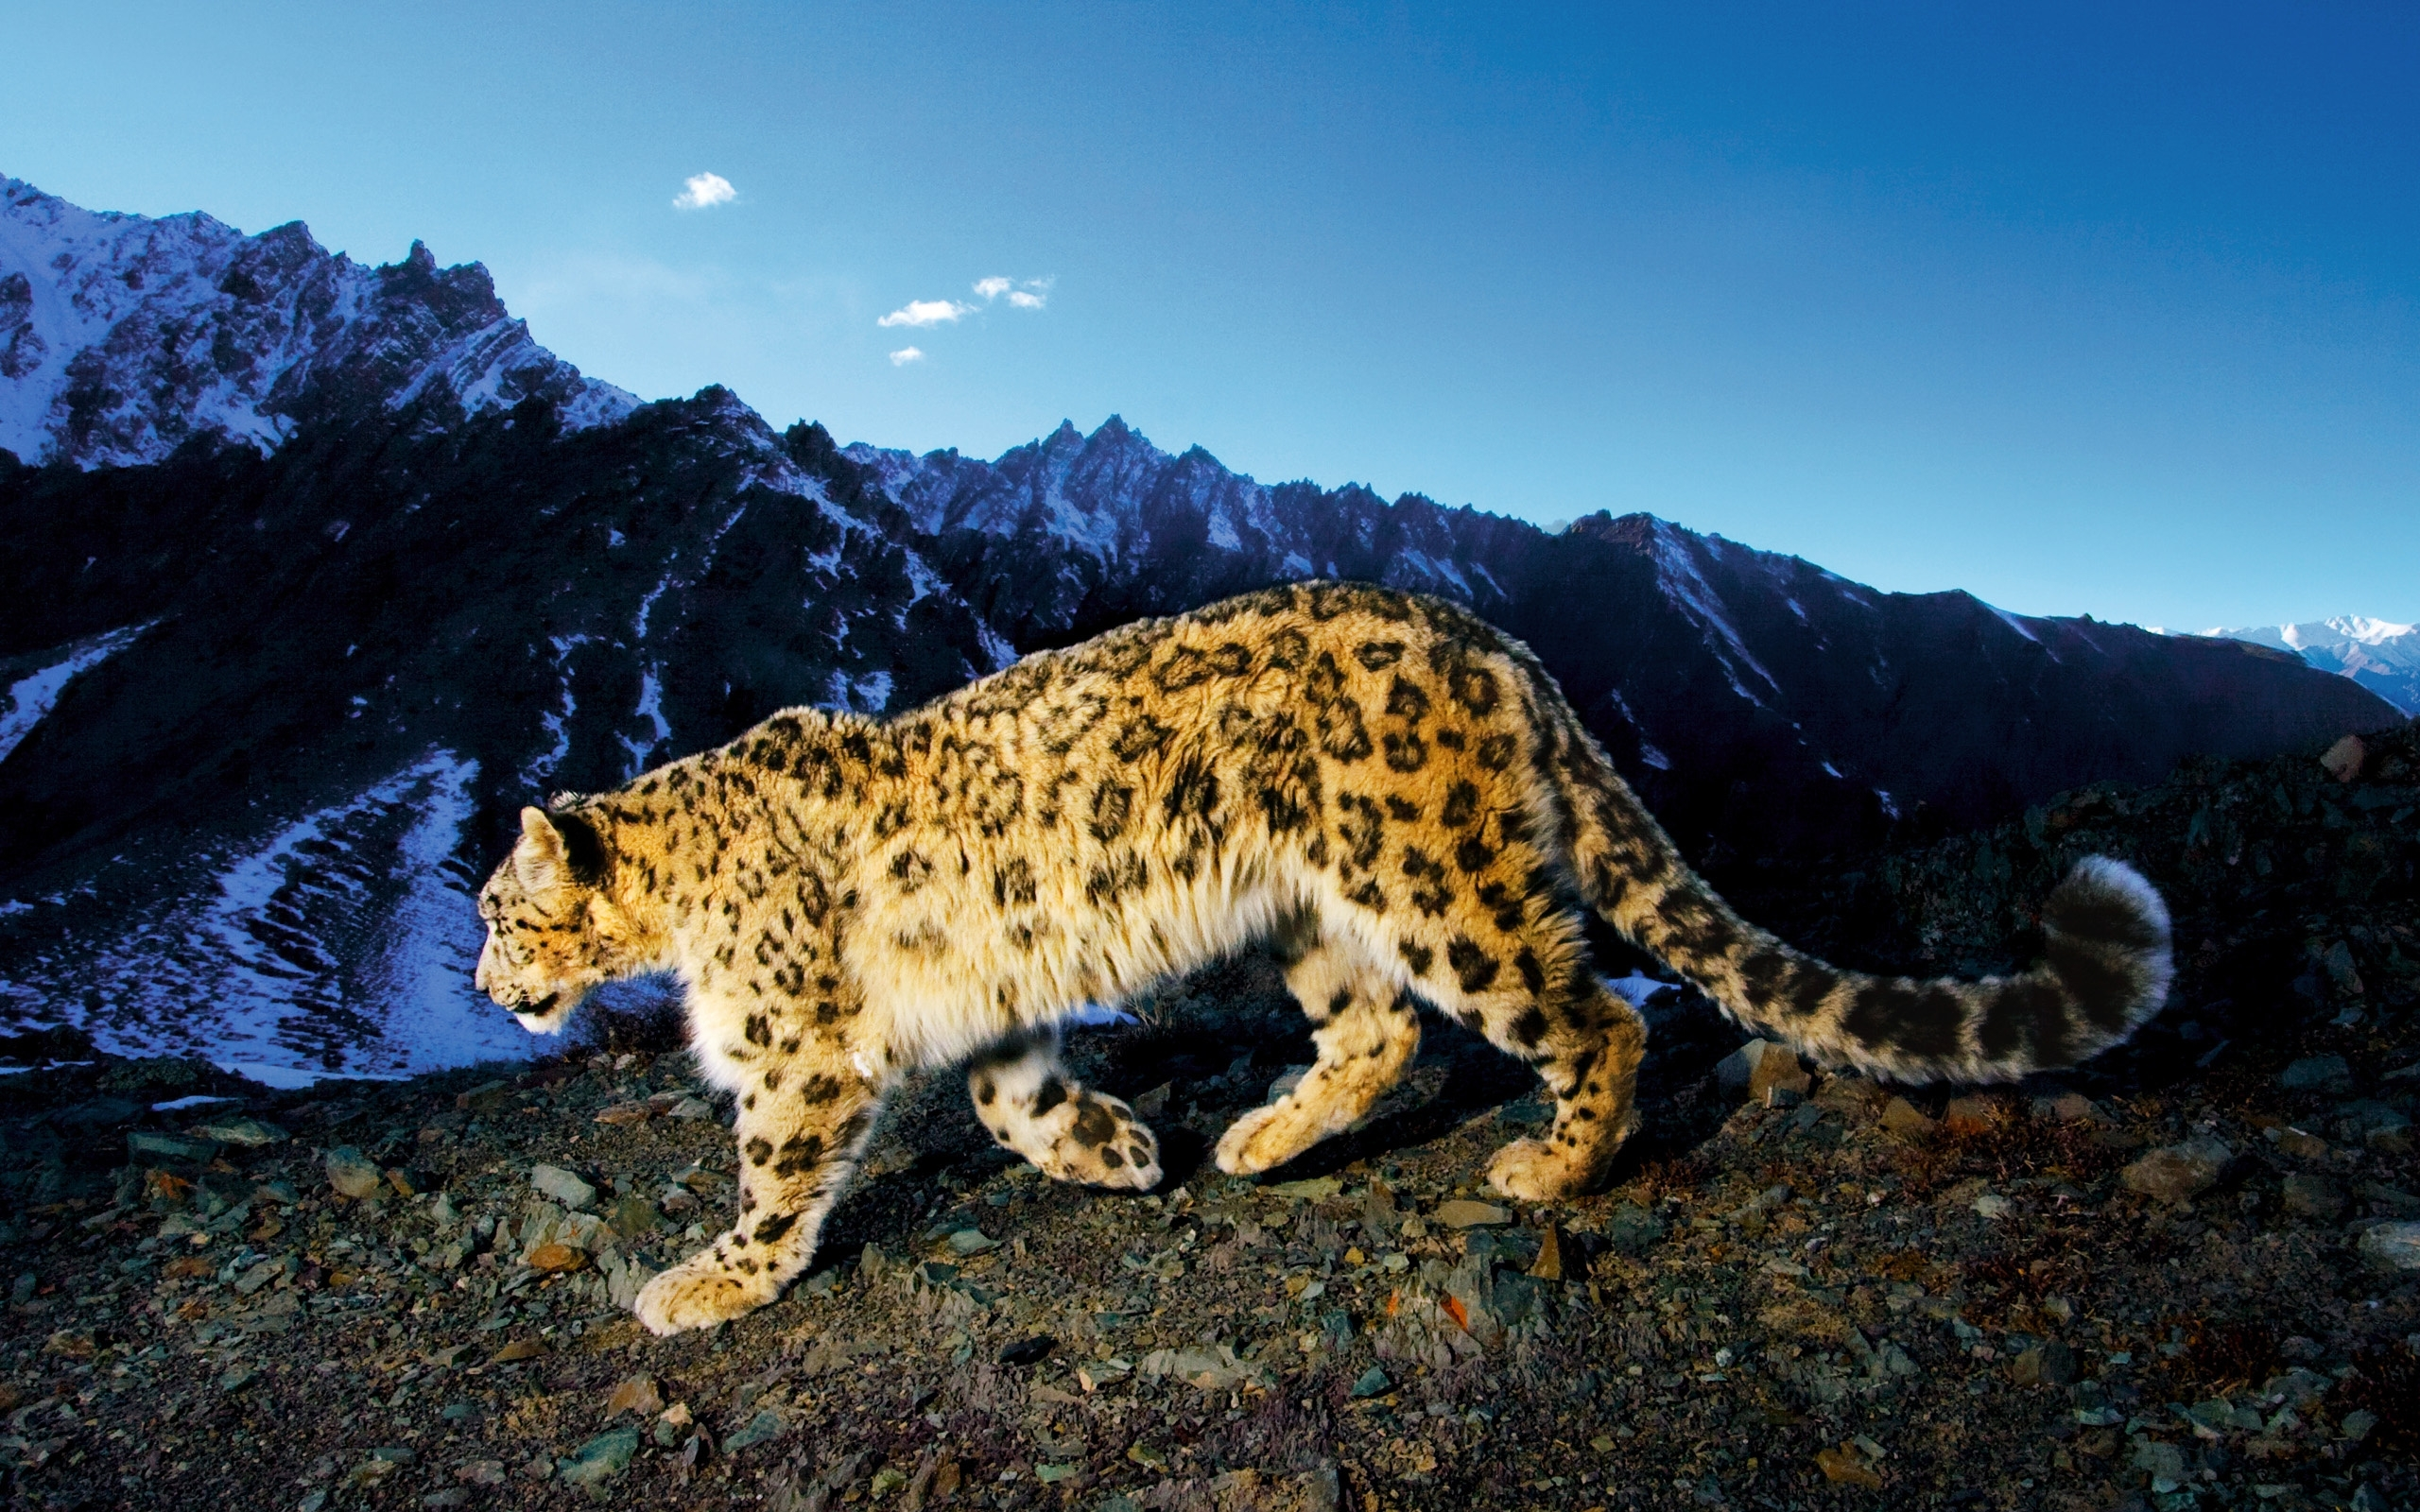 40666 download wallpaper Animals, Snow Leopard screensavers and pictures for free